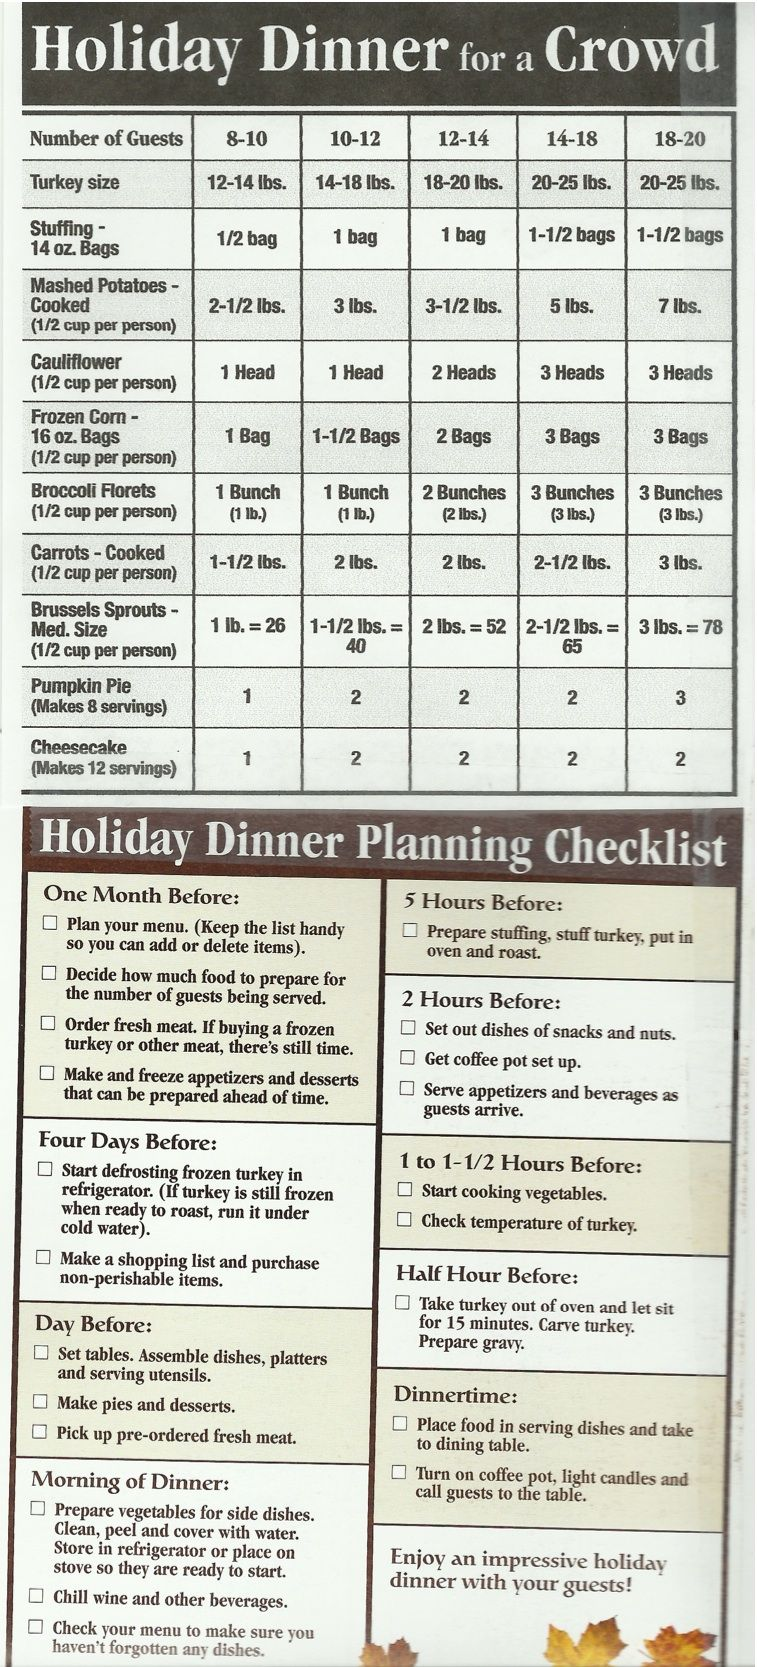 Holiday Dinner cooking tips for large groups. For our CROSSroads Thanksgiving! | Christmas ...